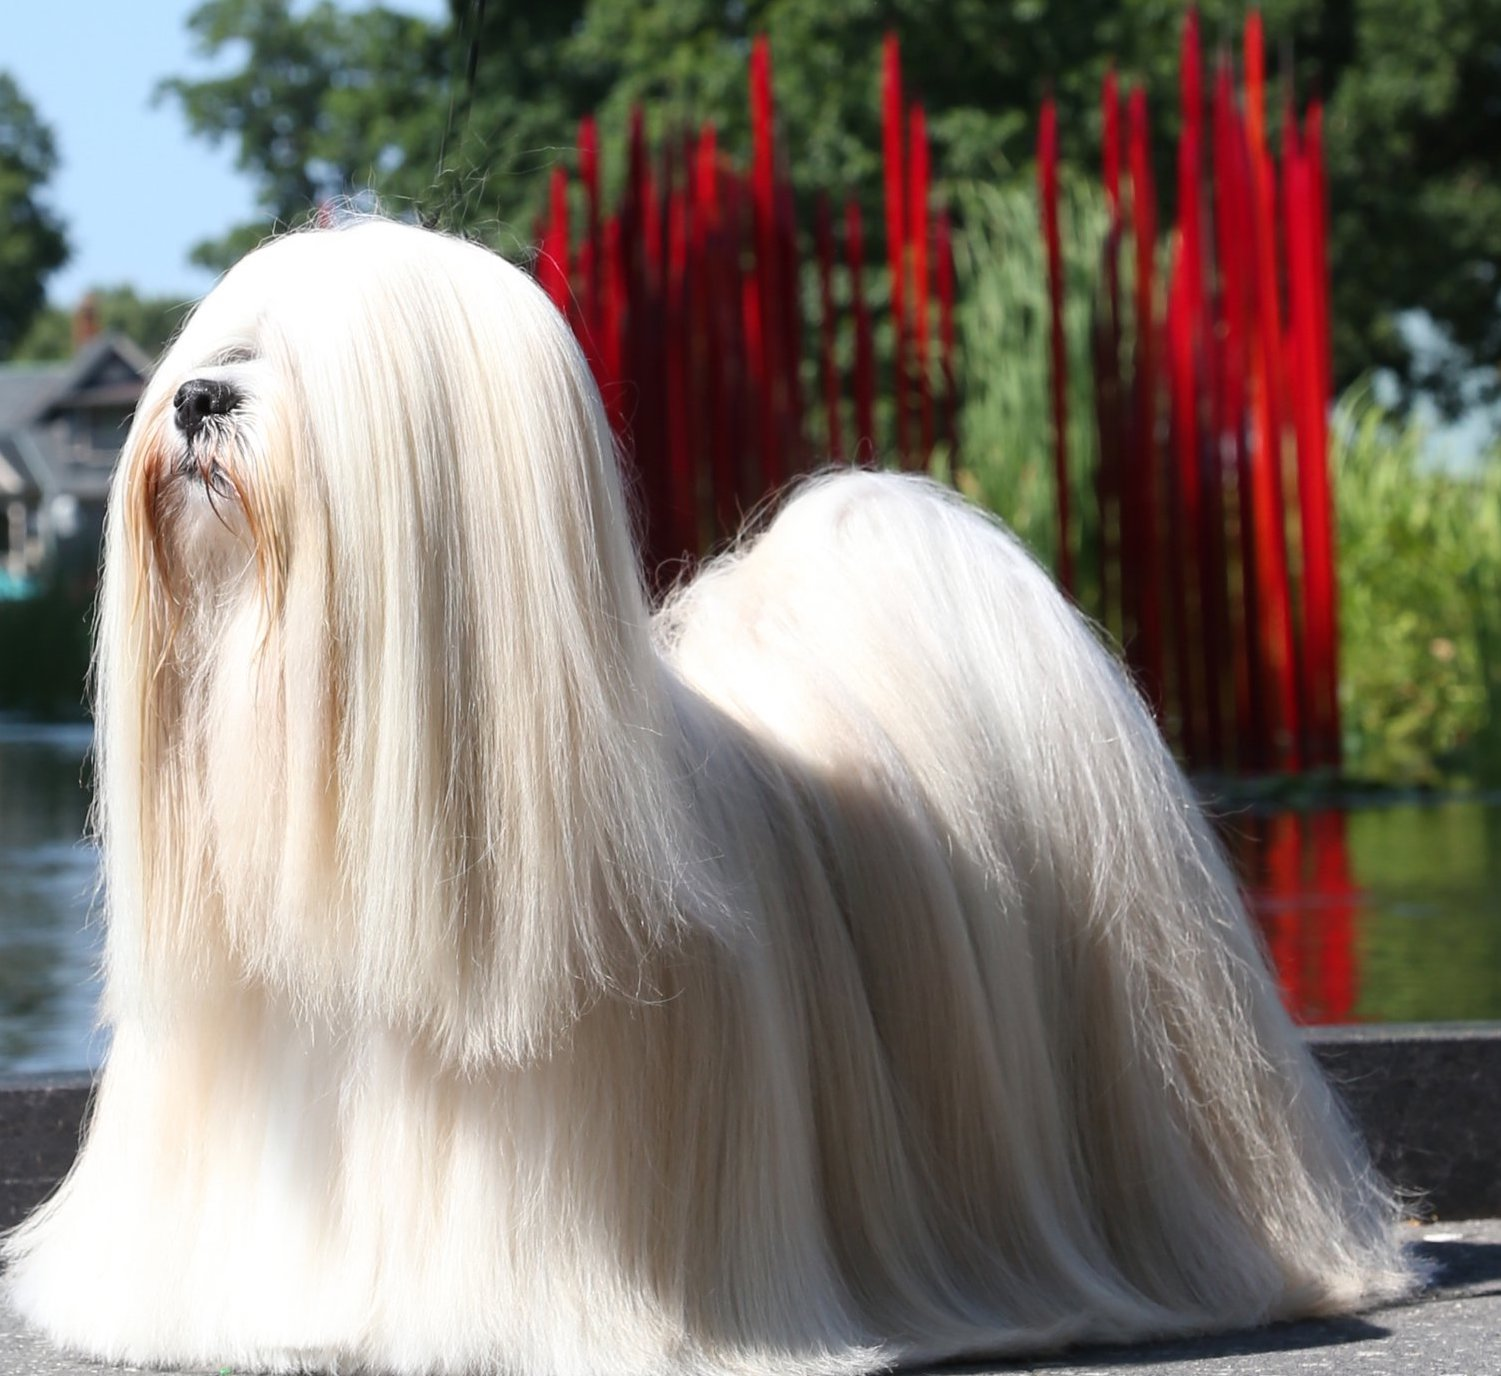 Susan Giles On The Lhasa Apso Grooming And Breeding Pure Dog Talk